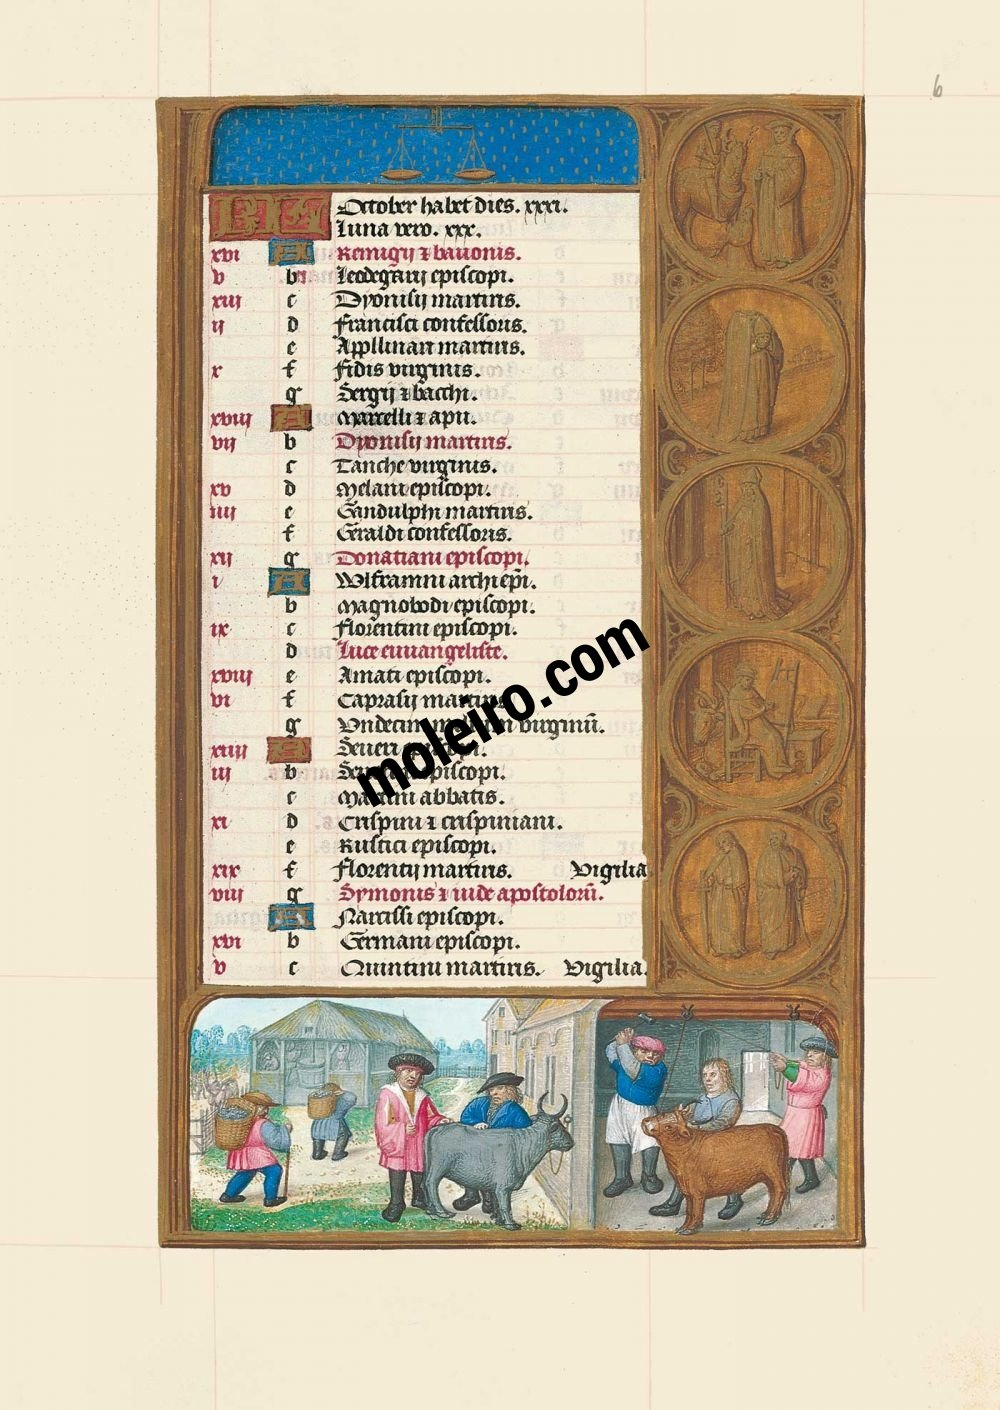 The Hours of Joanna I of Castile, Joanna the Mad (The London Rothschild Prayerbook) f. 6r, Calendar, October